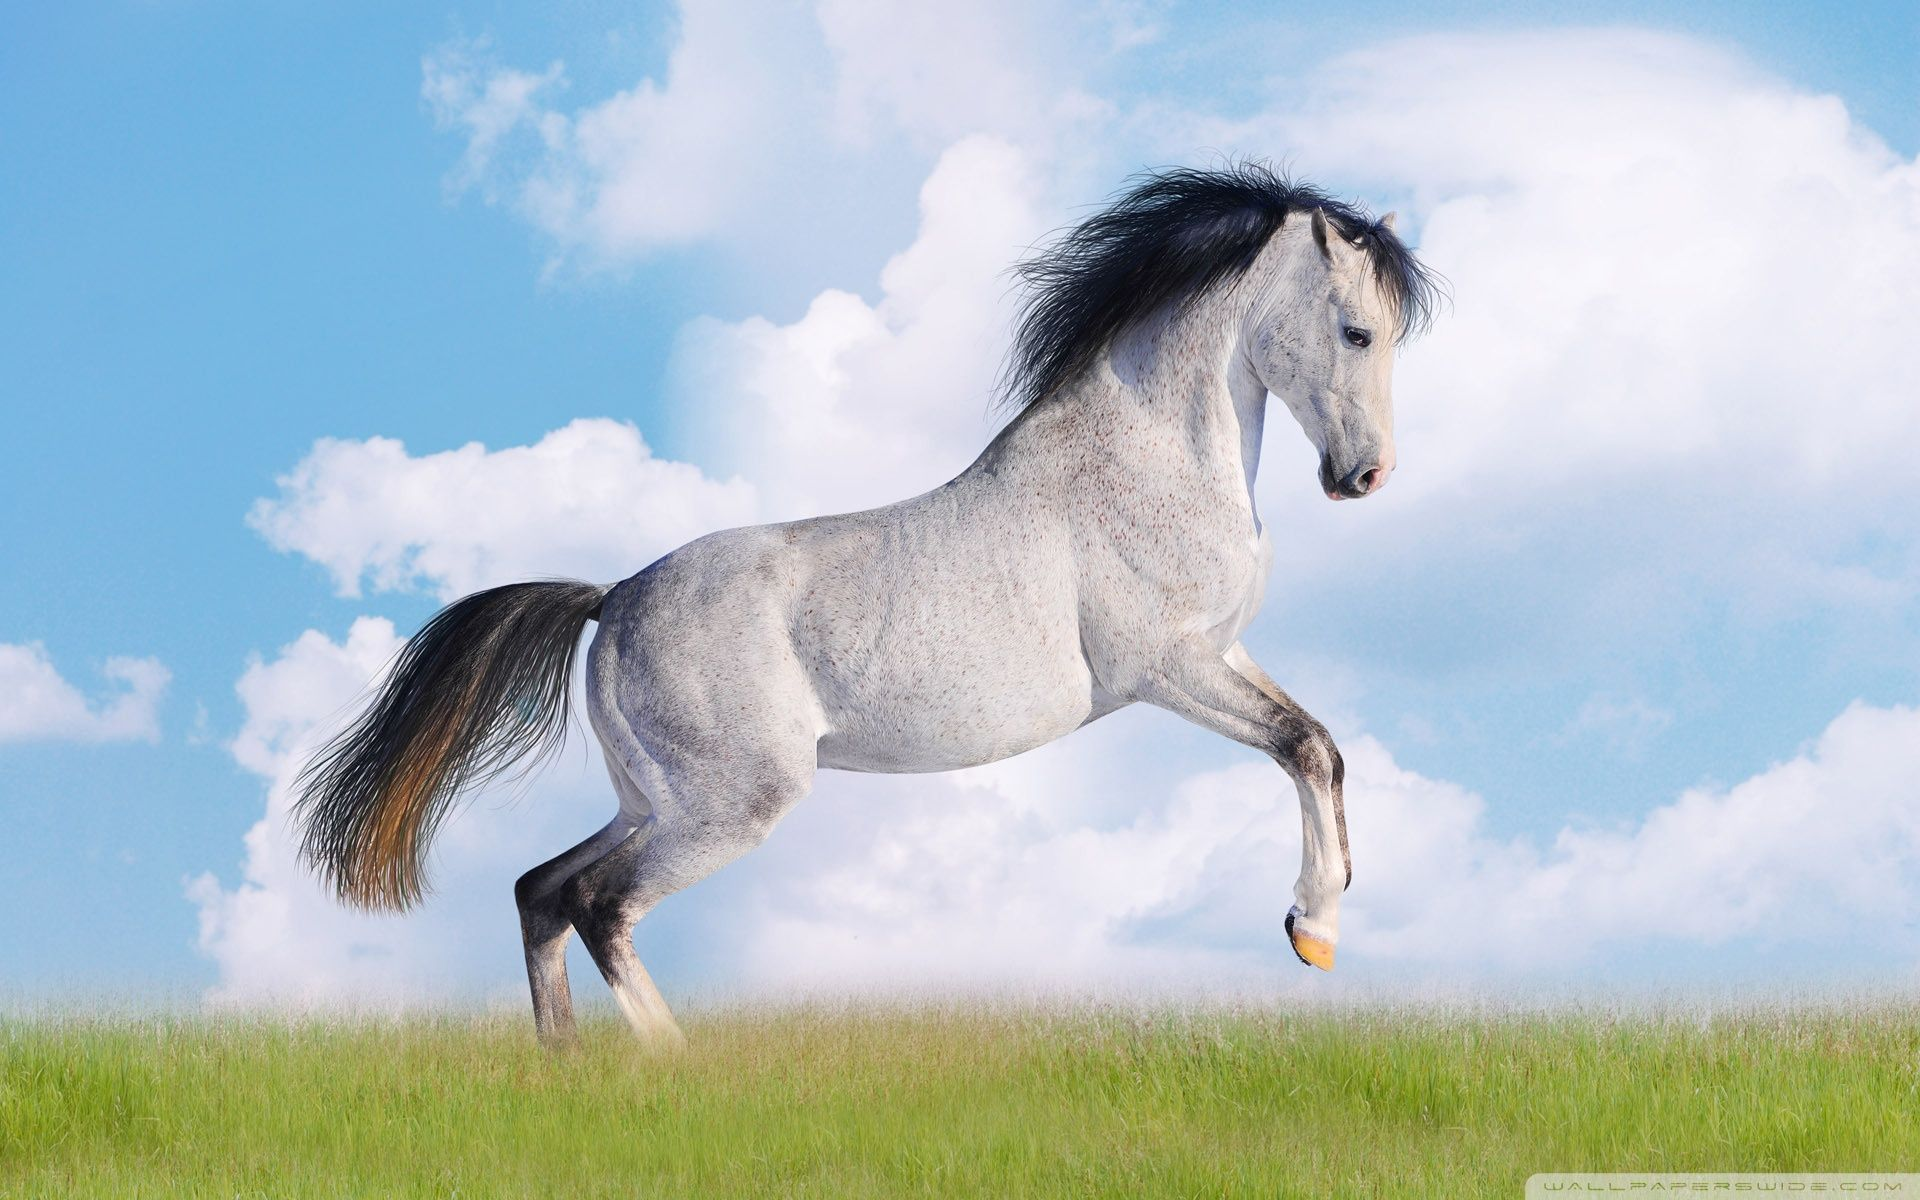 White Horse Wallpapers Horses Horse Wallpaper Horse Pictures